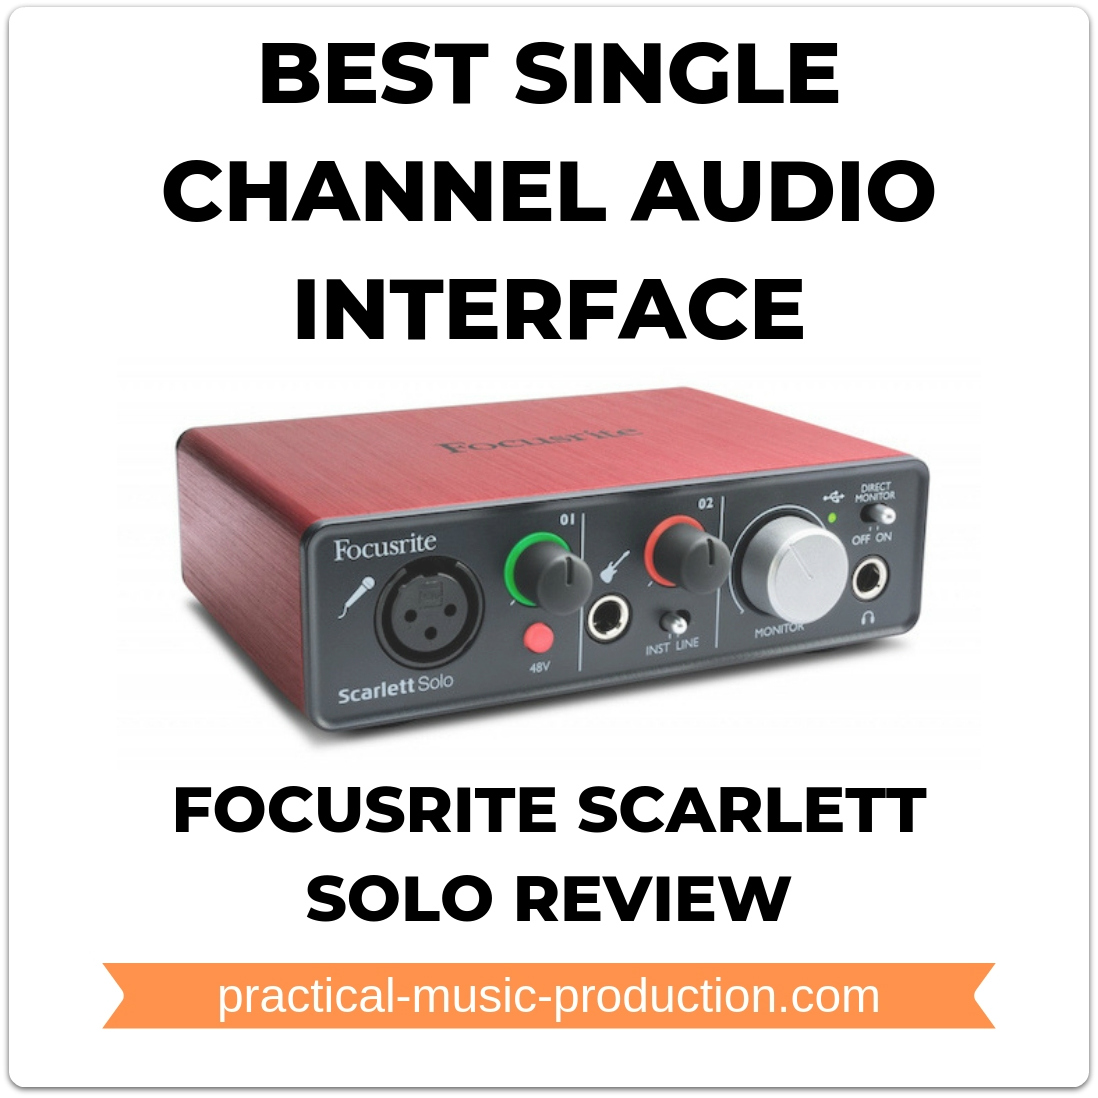 The best single channel audio interface is the Focusrite Scarlett Solo